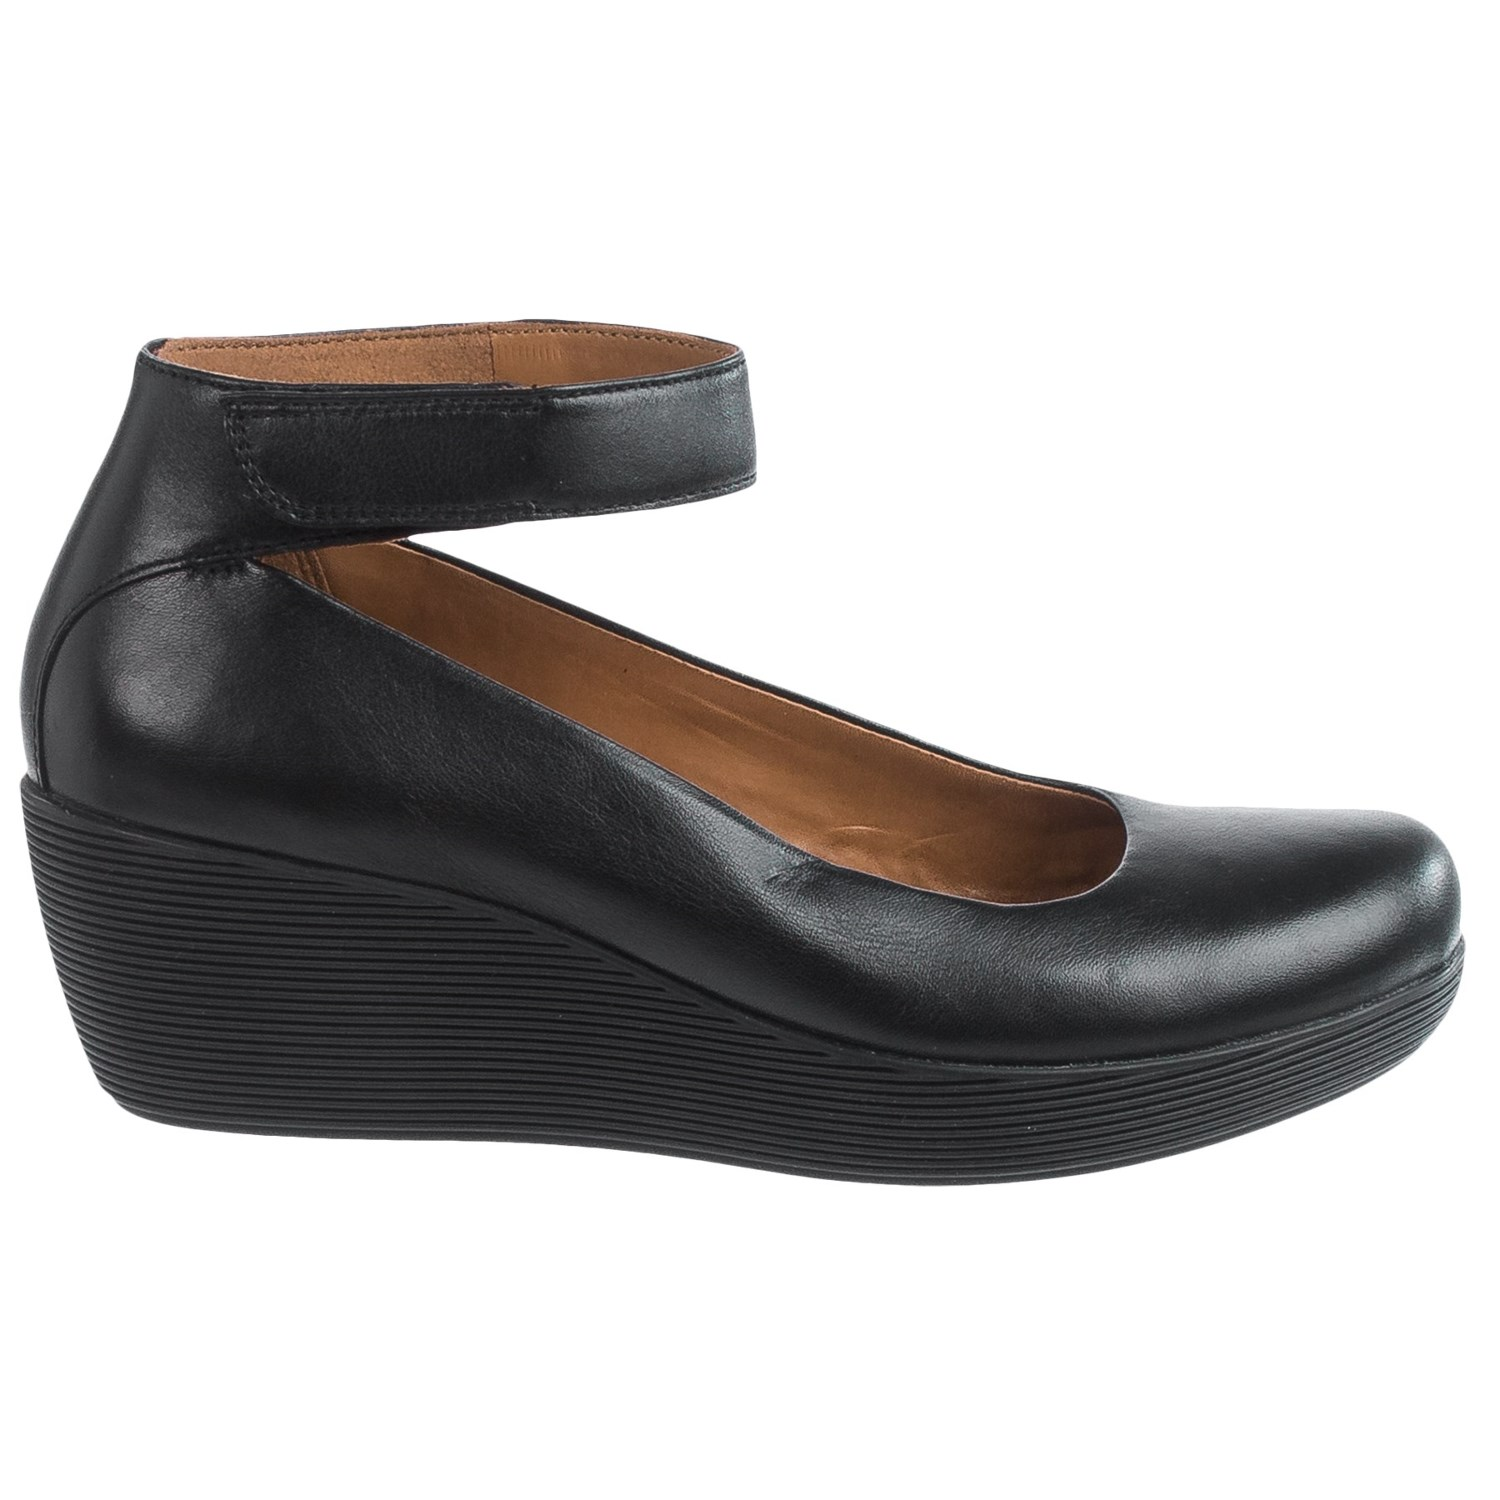 Clarks Shoes Silhouette